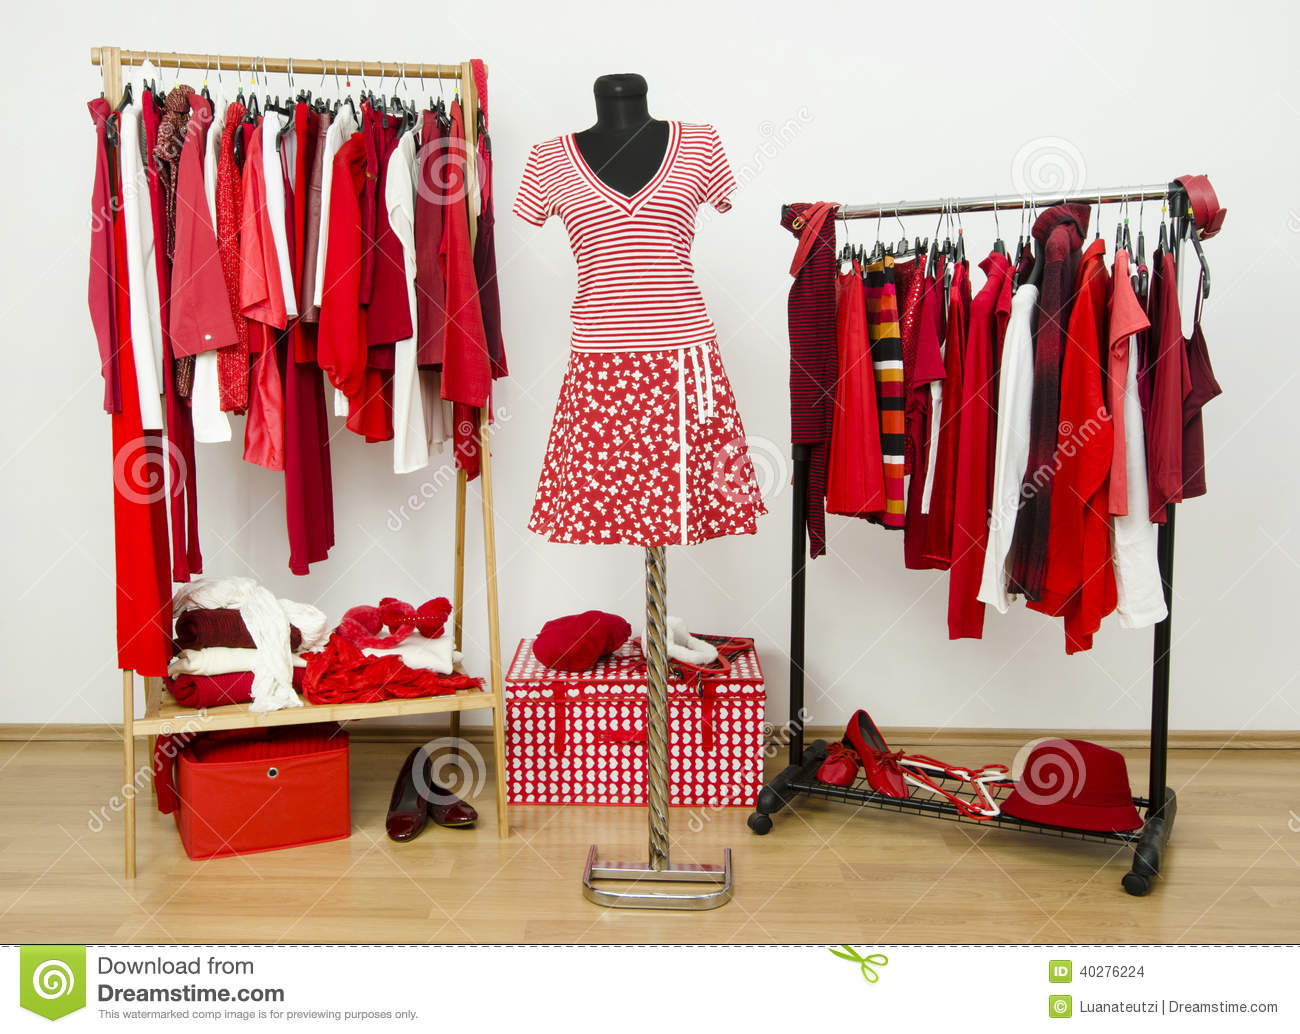 Dressing Closet With Red And White Clothes Arranged On Hangers And An Outfit On A Mannequin